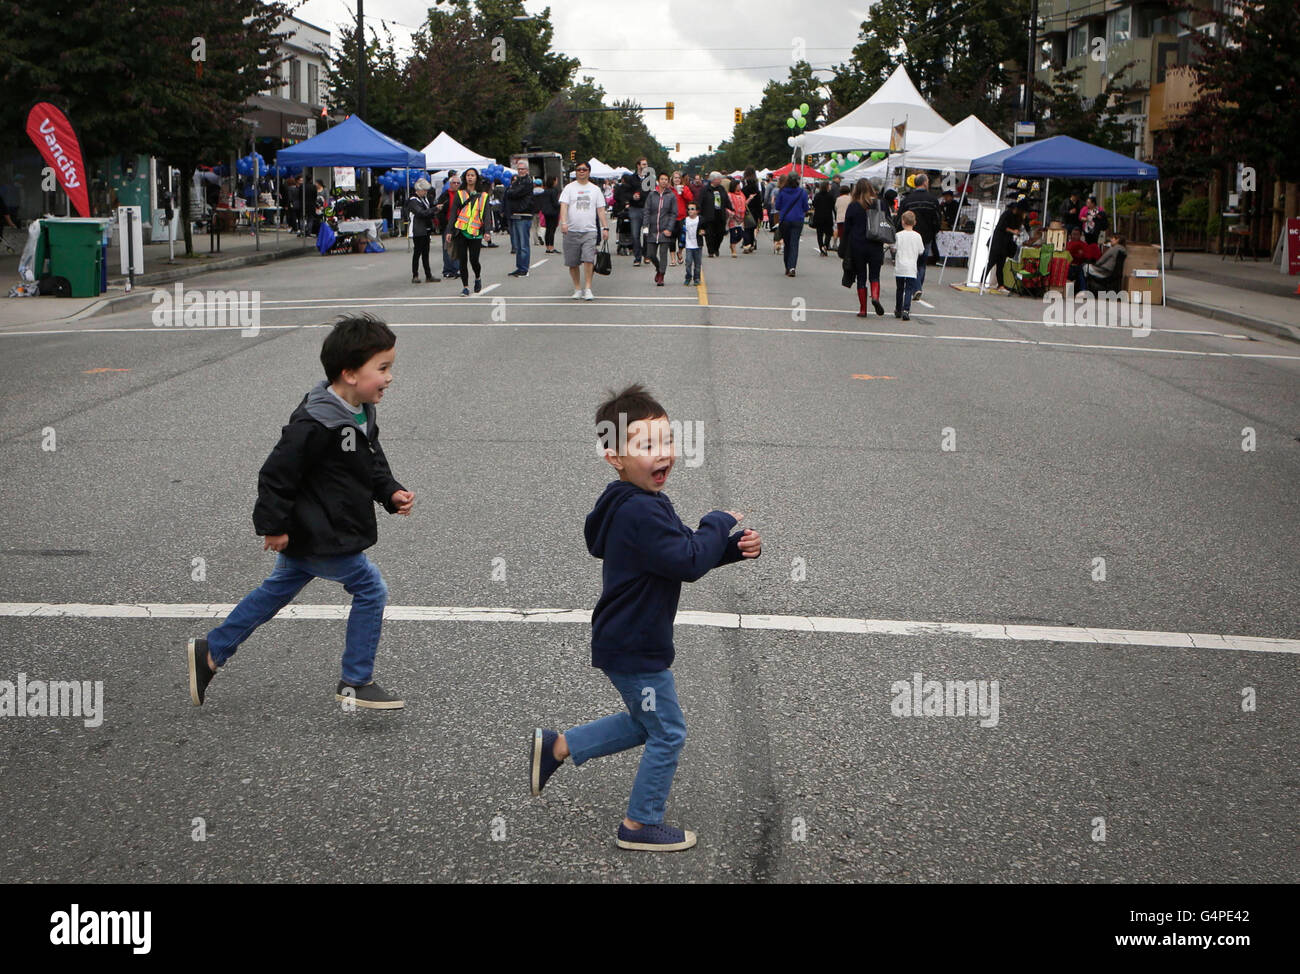 Vancouver, Canada. 20th June, 2016. Children run at a closed street during the Car Free Day event in Vancouver, - Stock Image